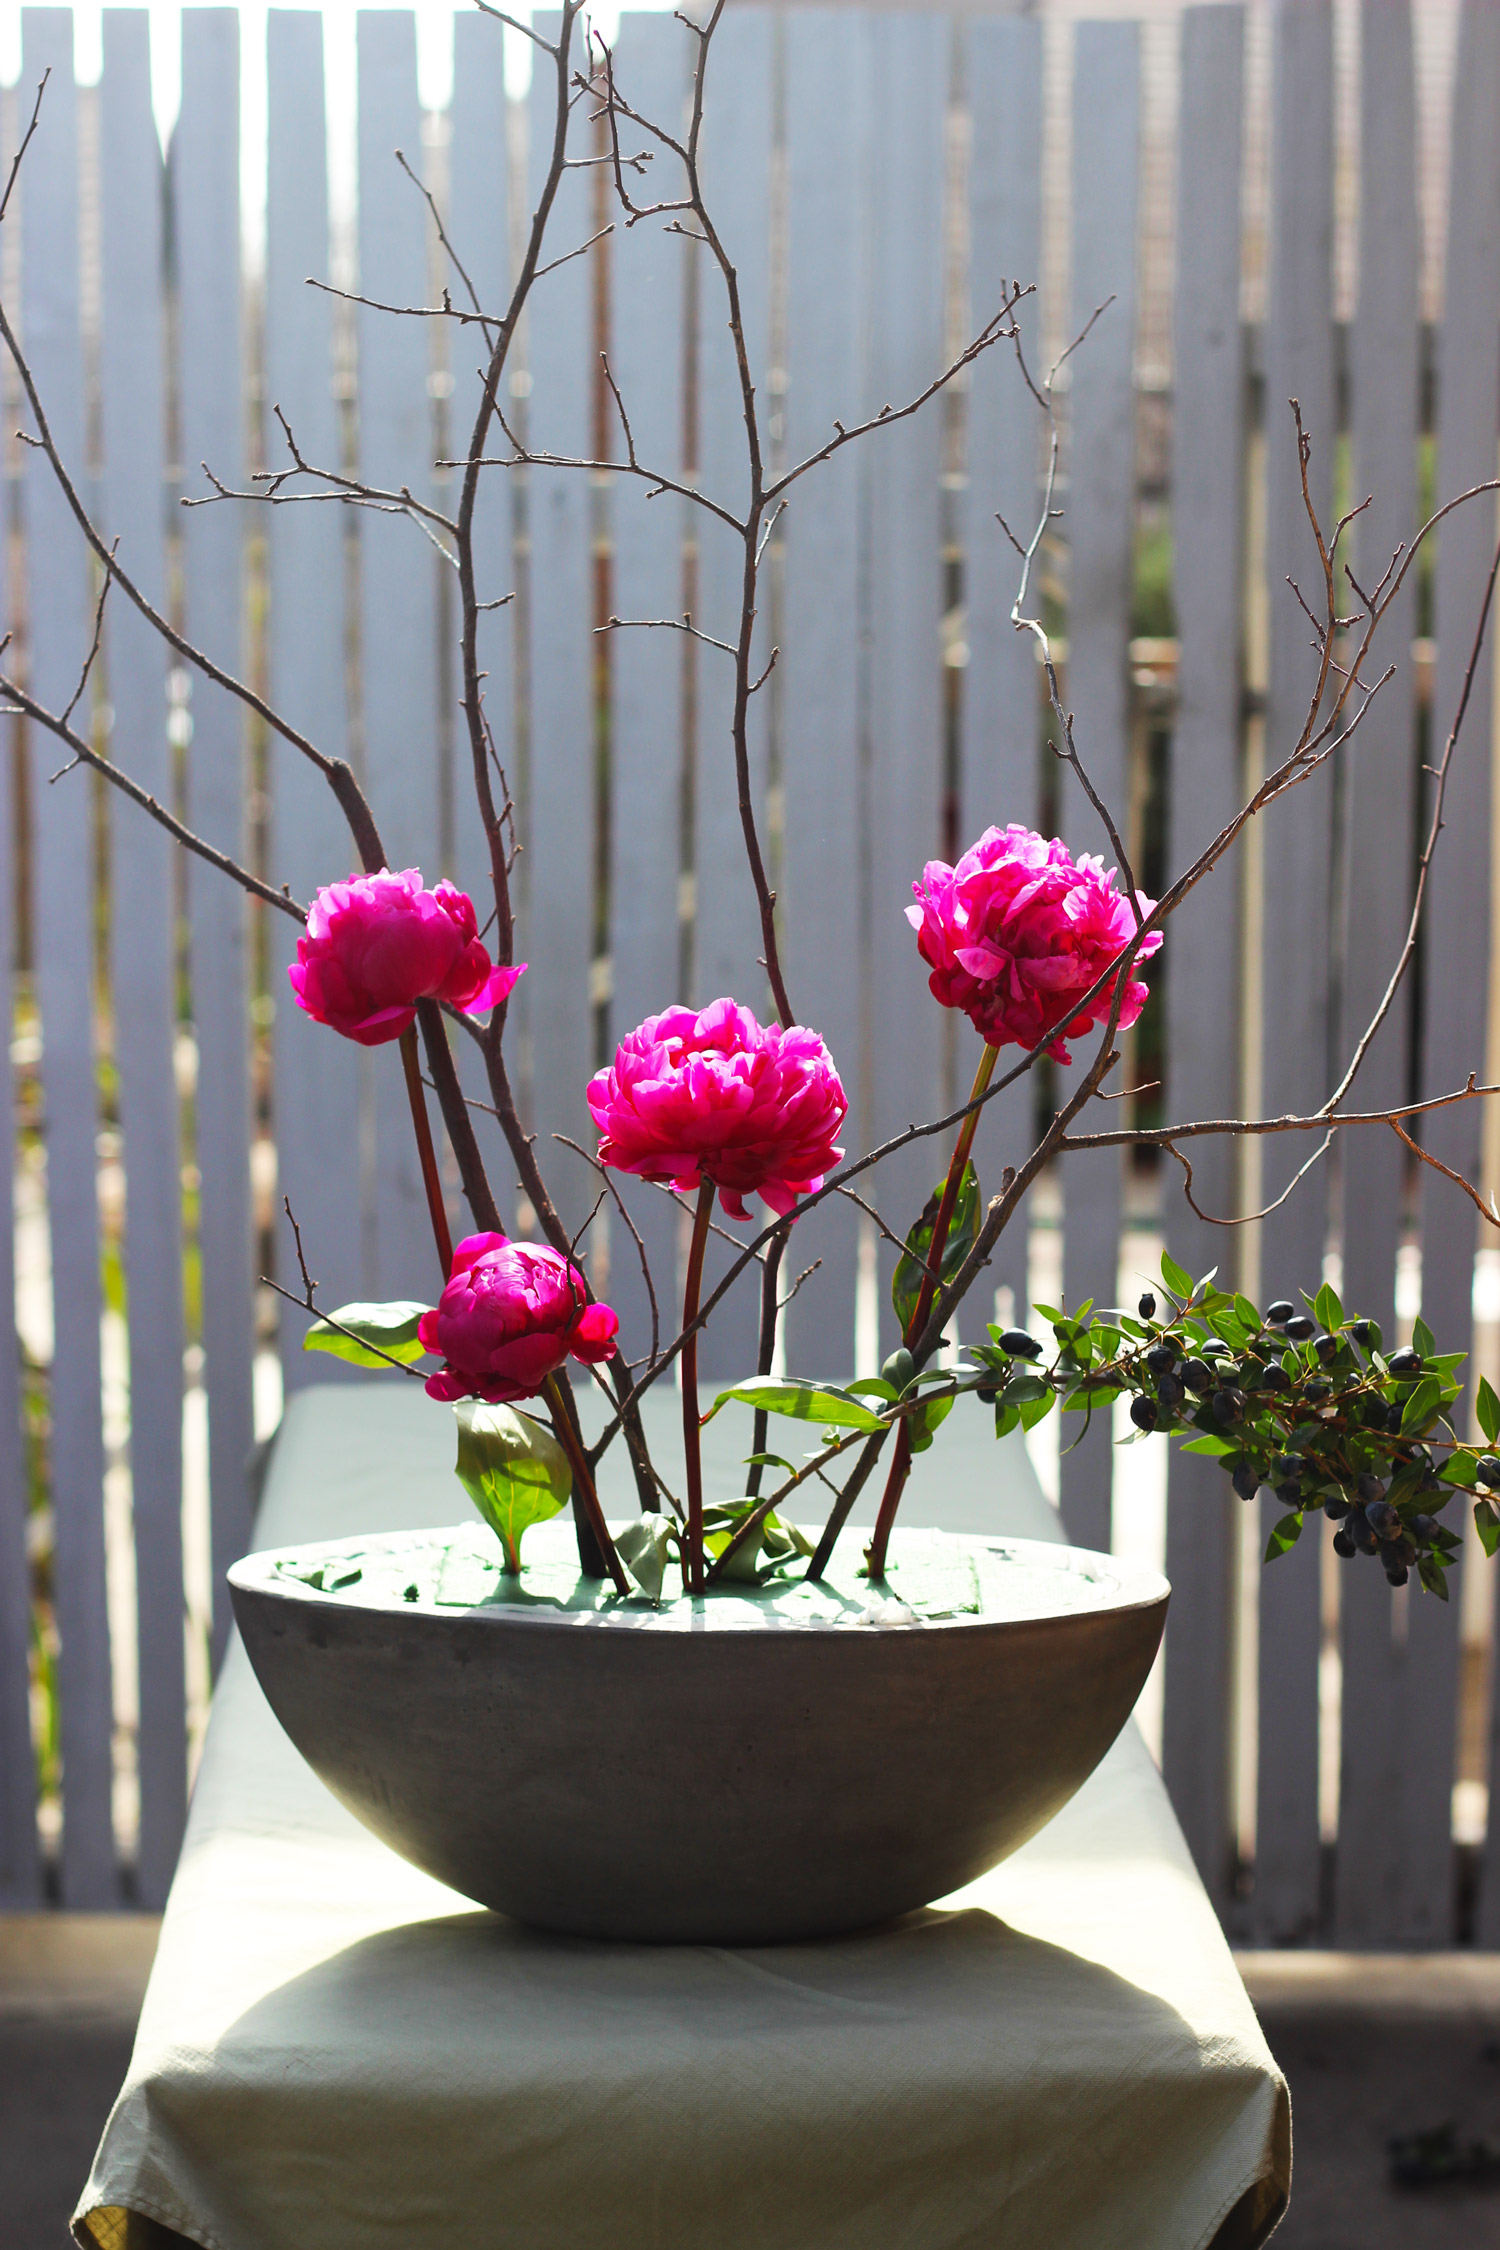 Place Peonies. Follow the placements shown. Place blue berry branch curving on a low angle to the right.